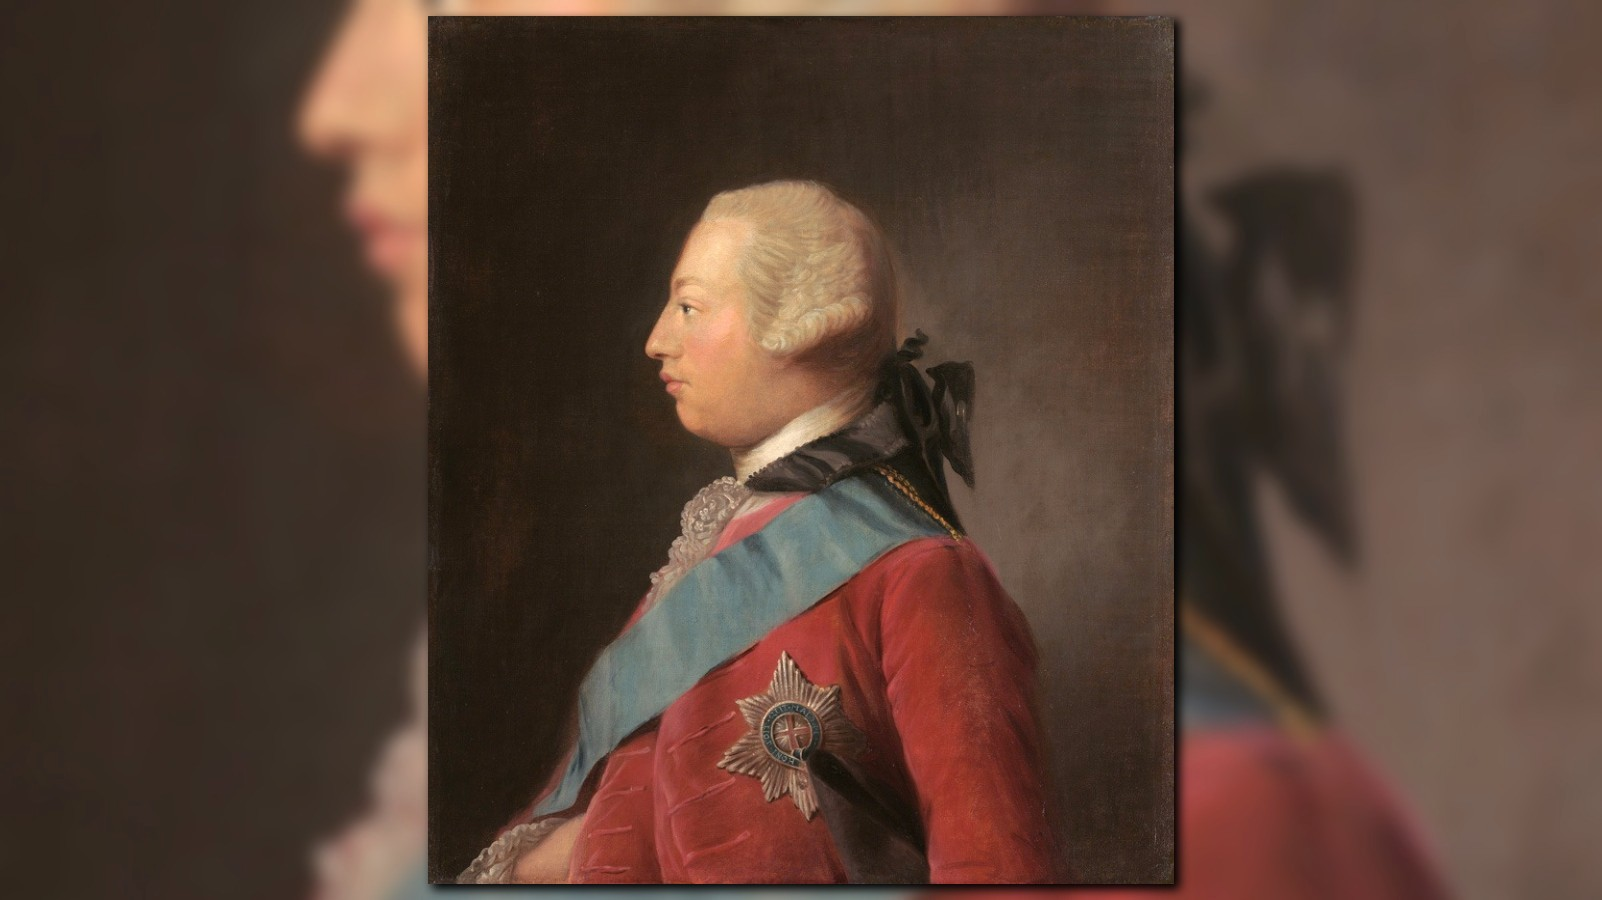 king george iii essay Relationship how did the accession of king george iii to the throne of great  britain affect british policies towards the american colonies george iii  succeeded.